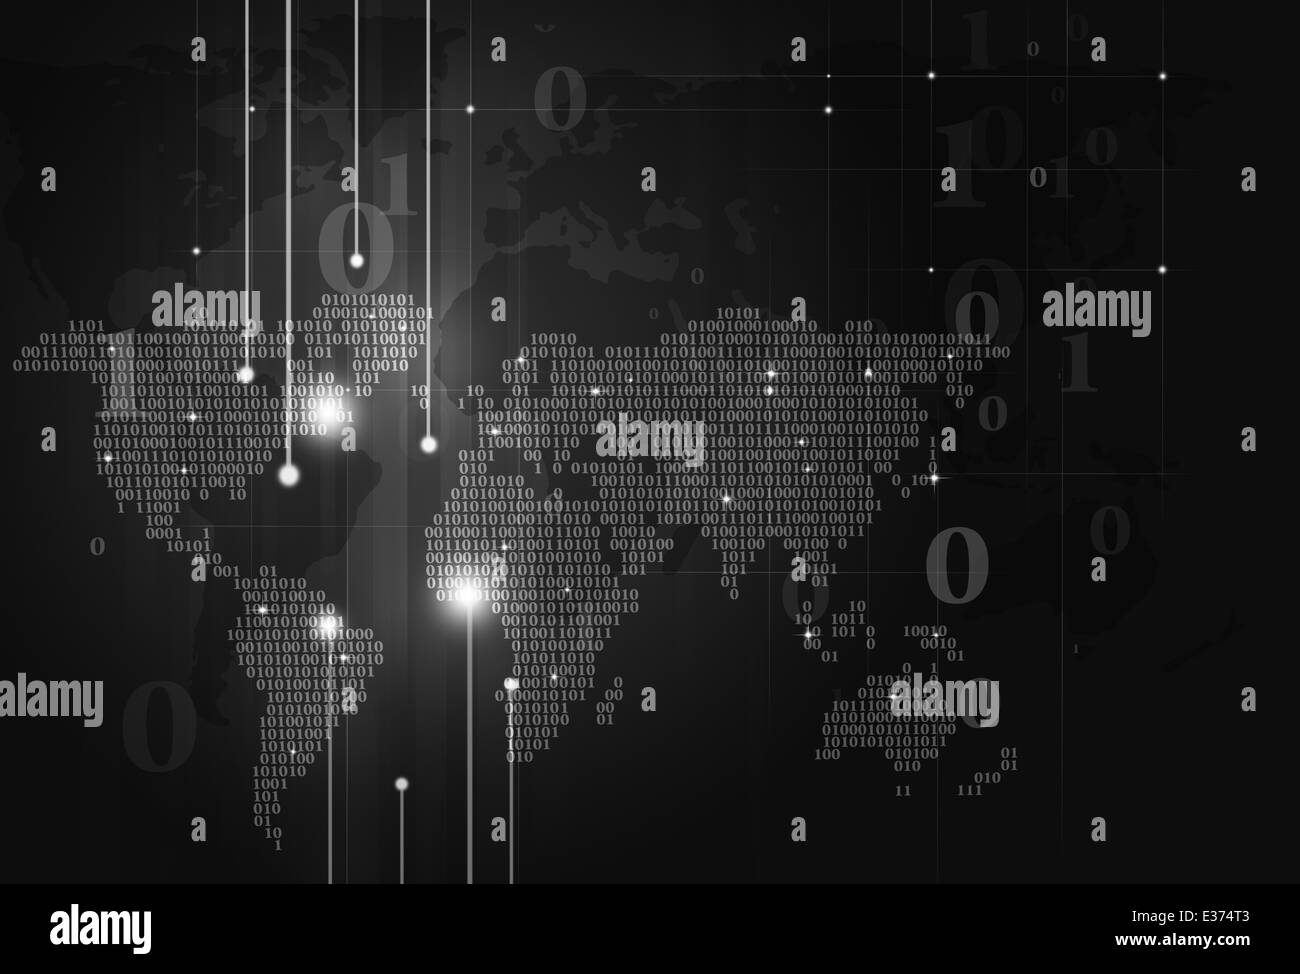 Abstract technology binary code world map on dark background stock abstract technology binary code world map on dark background gumiabroncs Choice Image